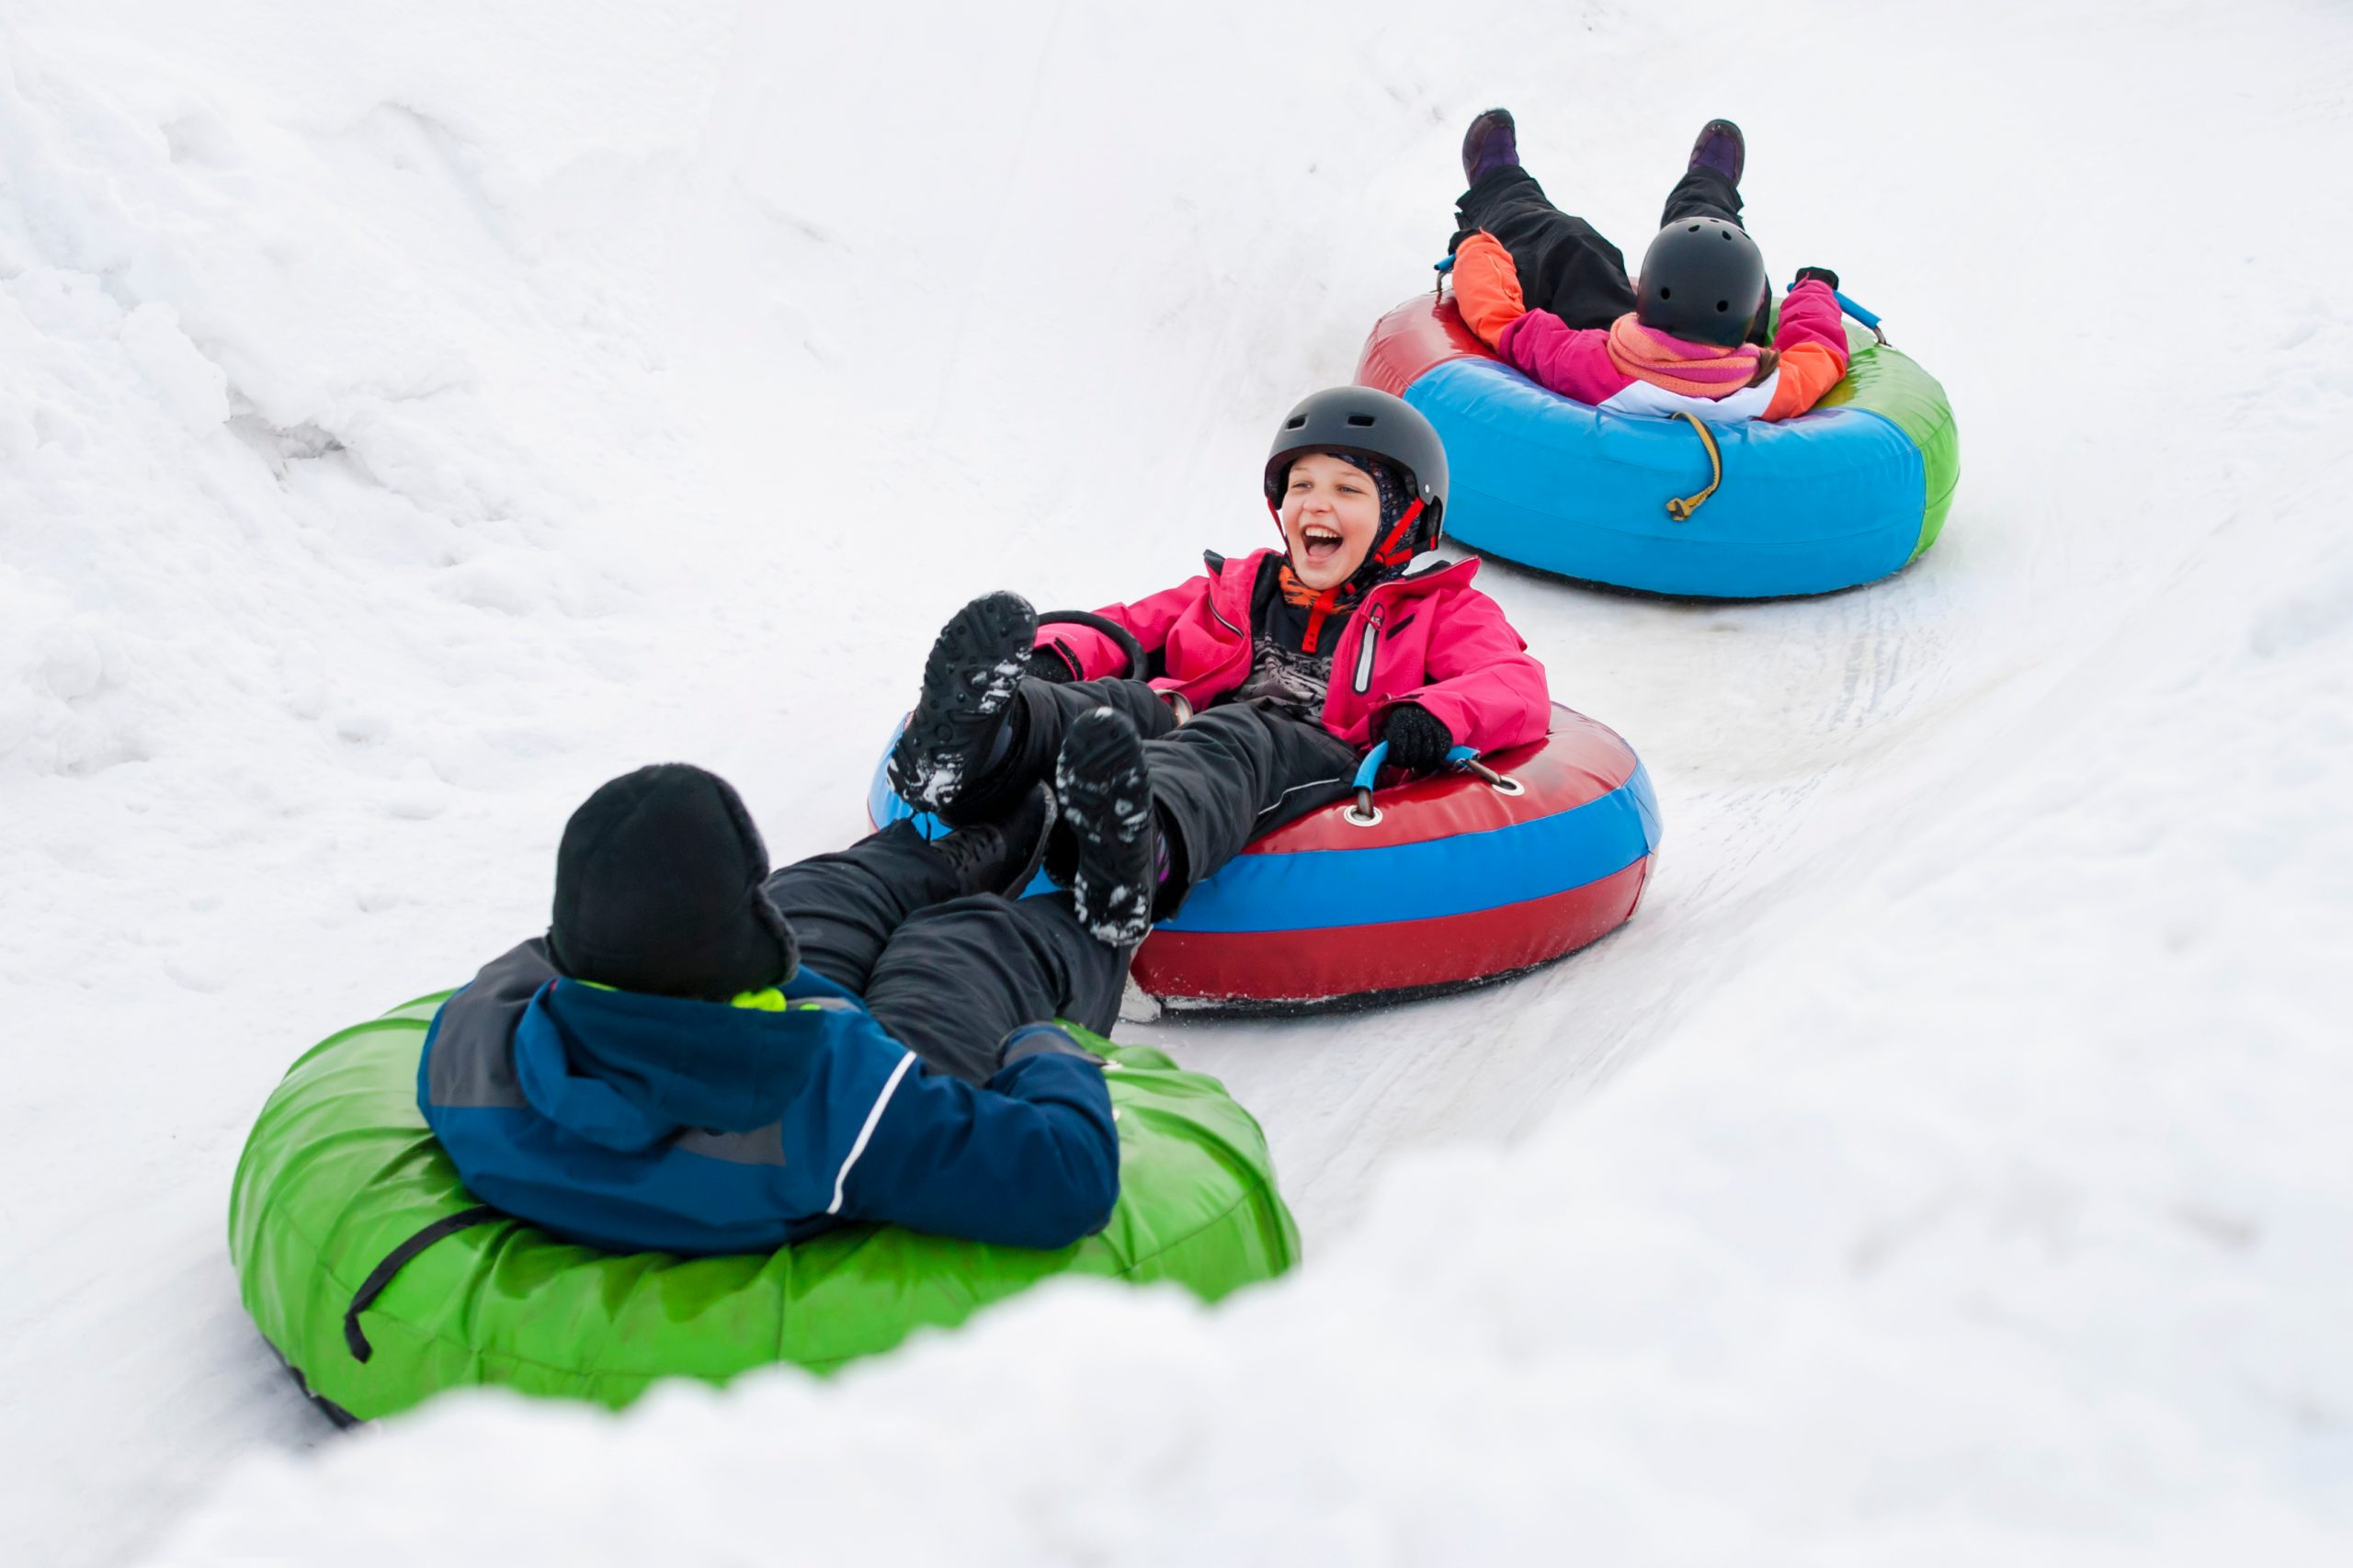 Children enjoying snow tubing